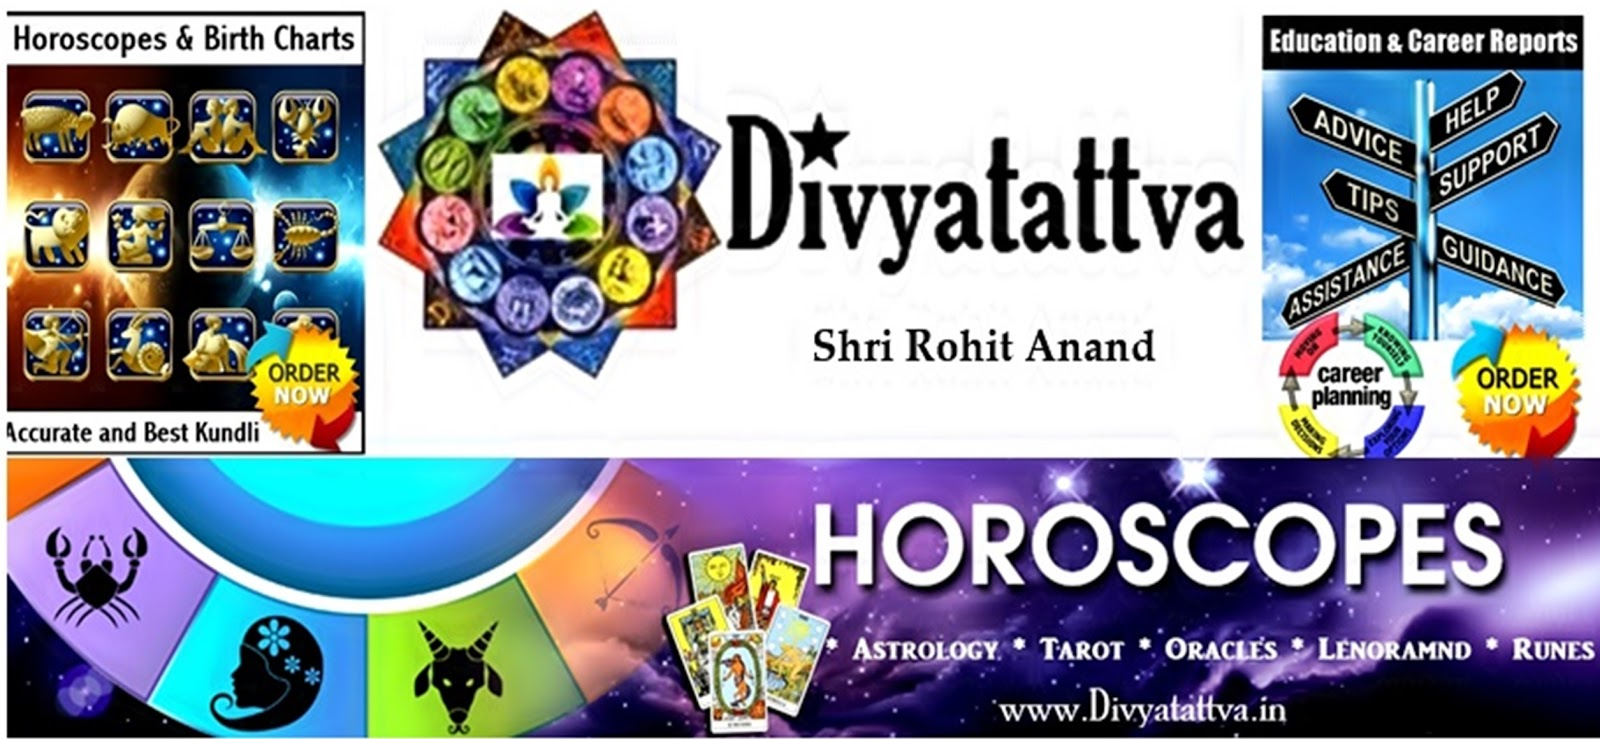 Psychic astrologer india free horoscopes online vedic astrology psychic predictions about future of world china india usa russia europe by intuitive vedic astrologer rohit anand at divyatattva new delhi india nvjuhfo Images